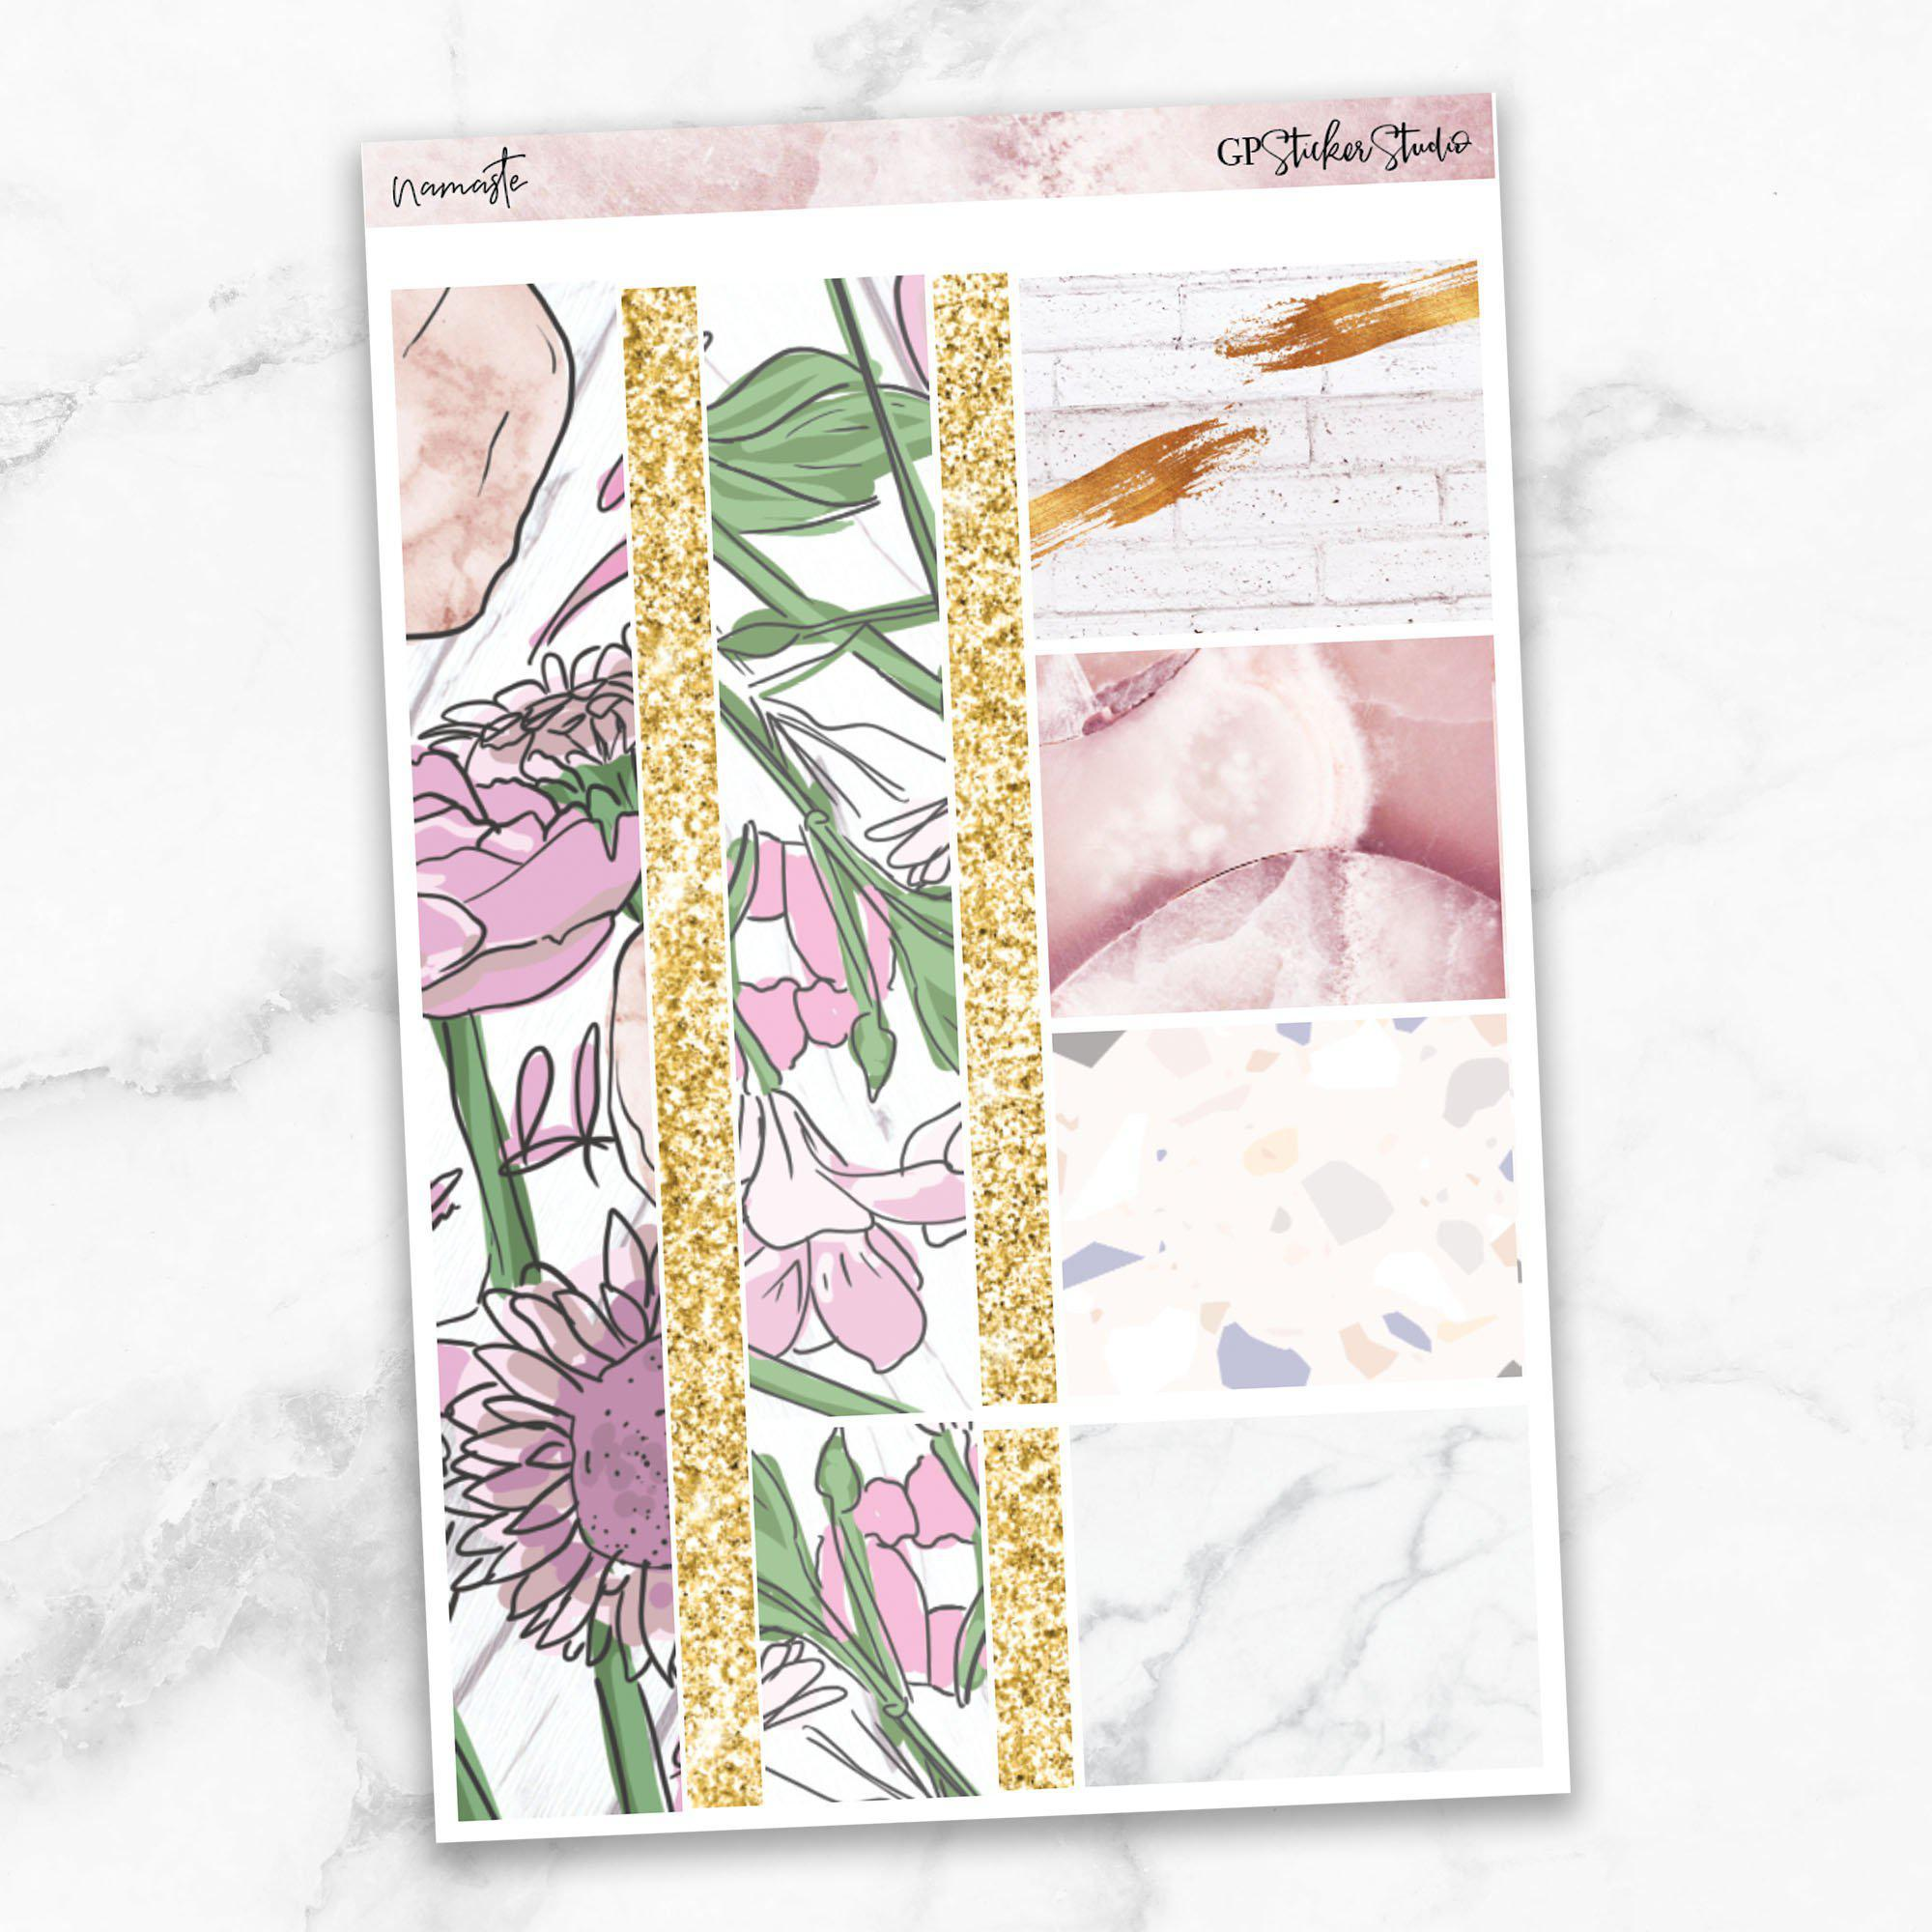 NAMASTE Washi Sheet Stickers-The GP Studio